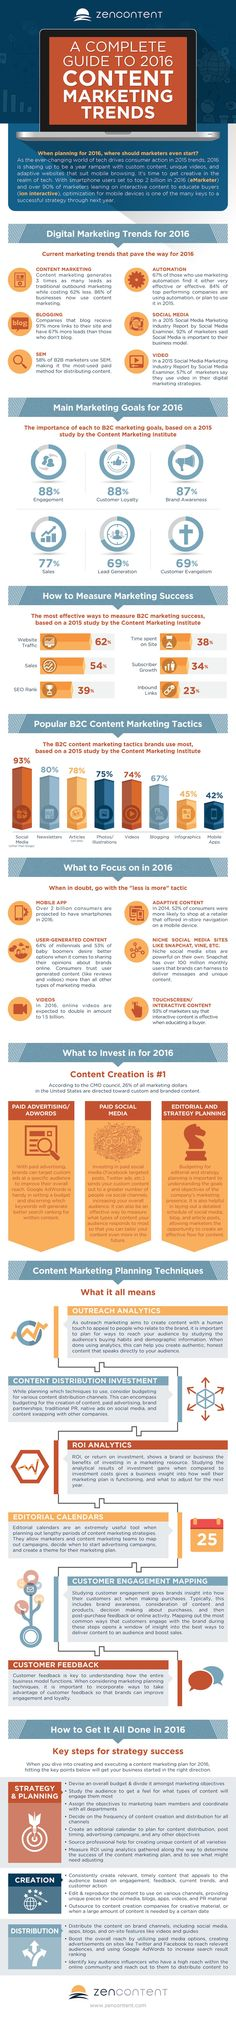 A Complete Guide to Content Marketing in 2016